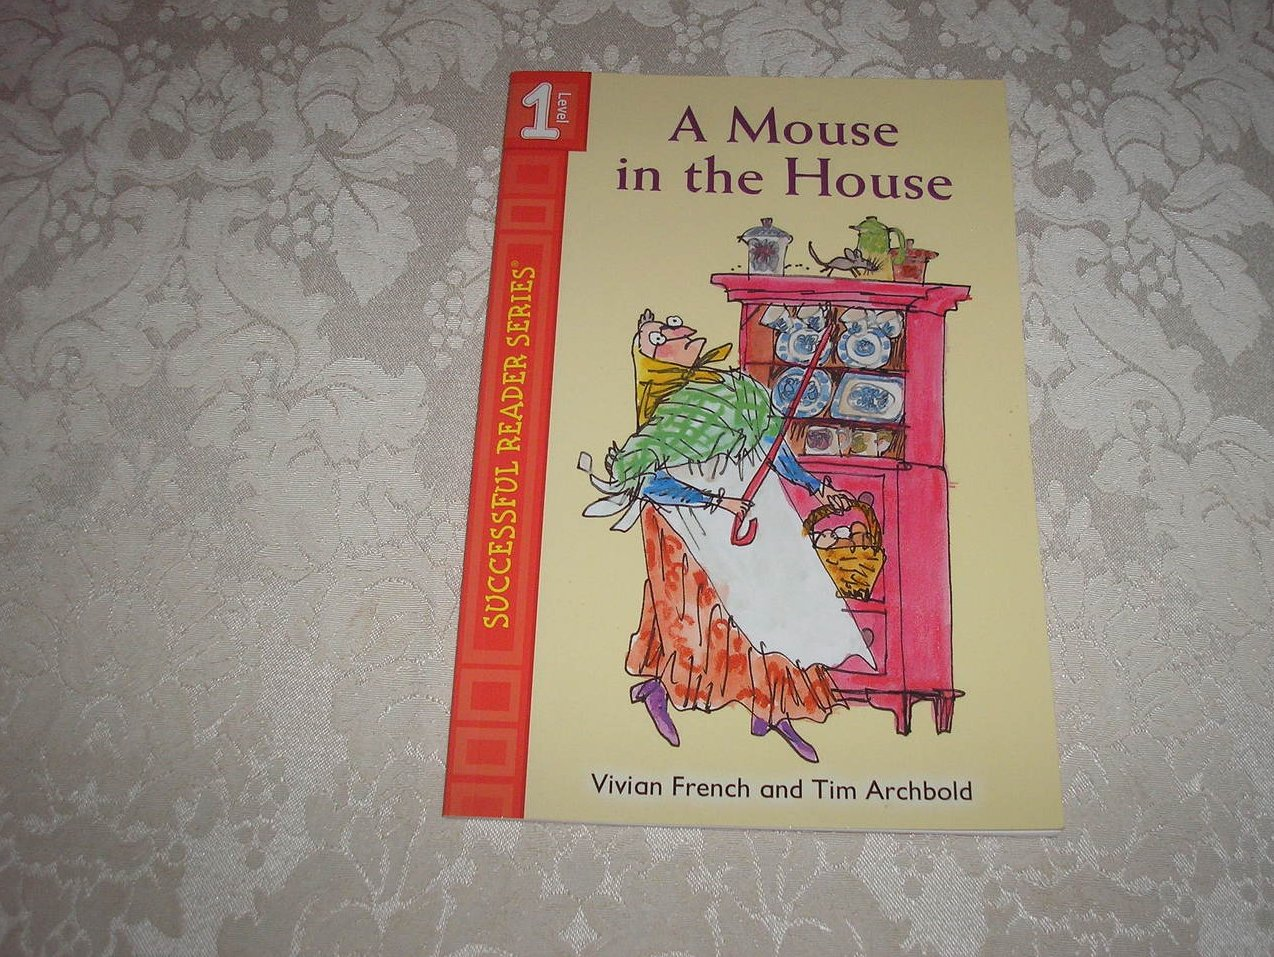 A Mouse in the House Vivian French and Tim Archbold brand new sc level 1 reader